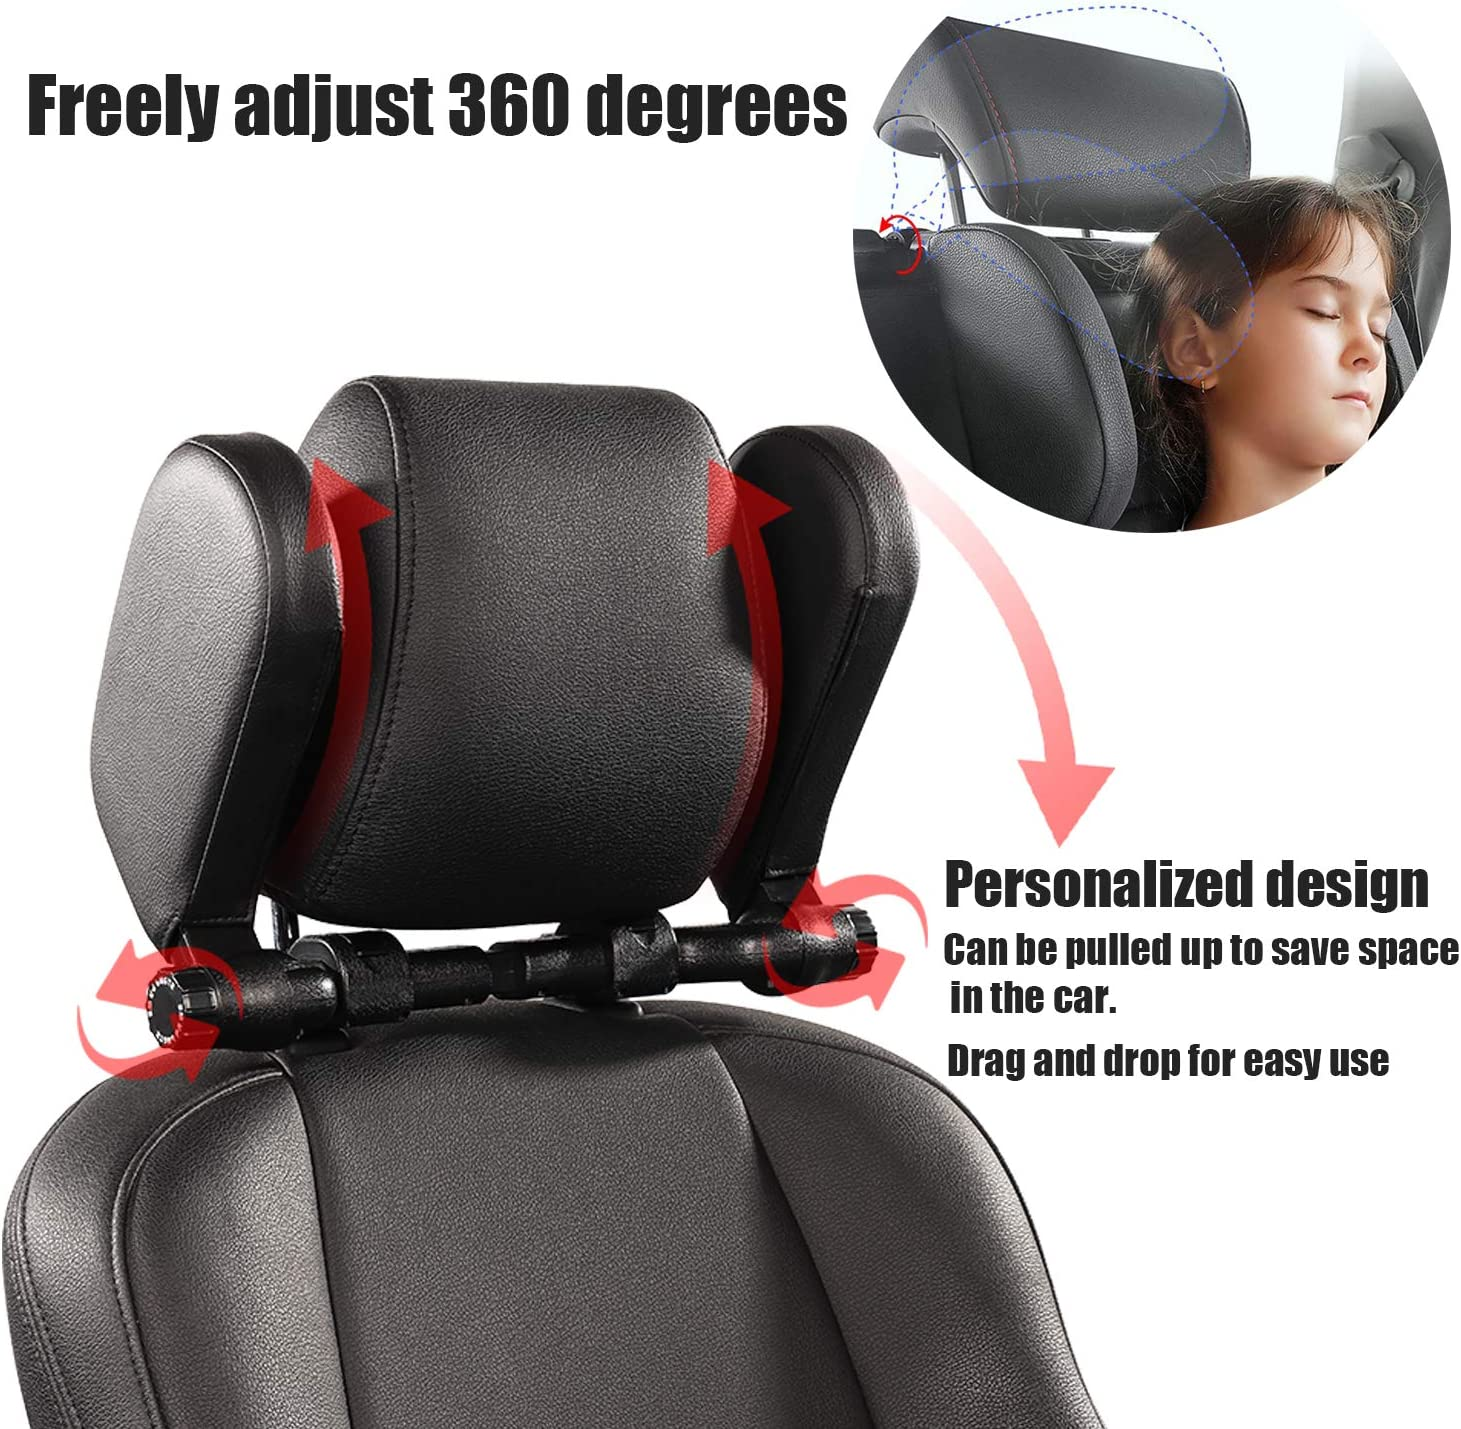 atimier Car Seat Headrest Pillow,Car Head Rest for Kids,Sleeping Travel Car Seat Pillow,360 Degree Adjustable on Both Sides Sleep Pillow in The Car Black